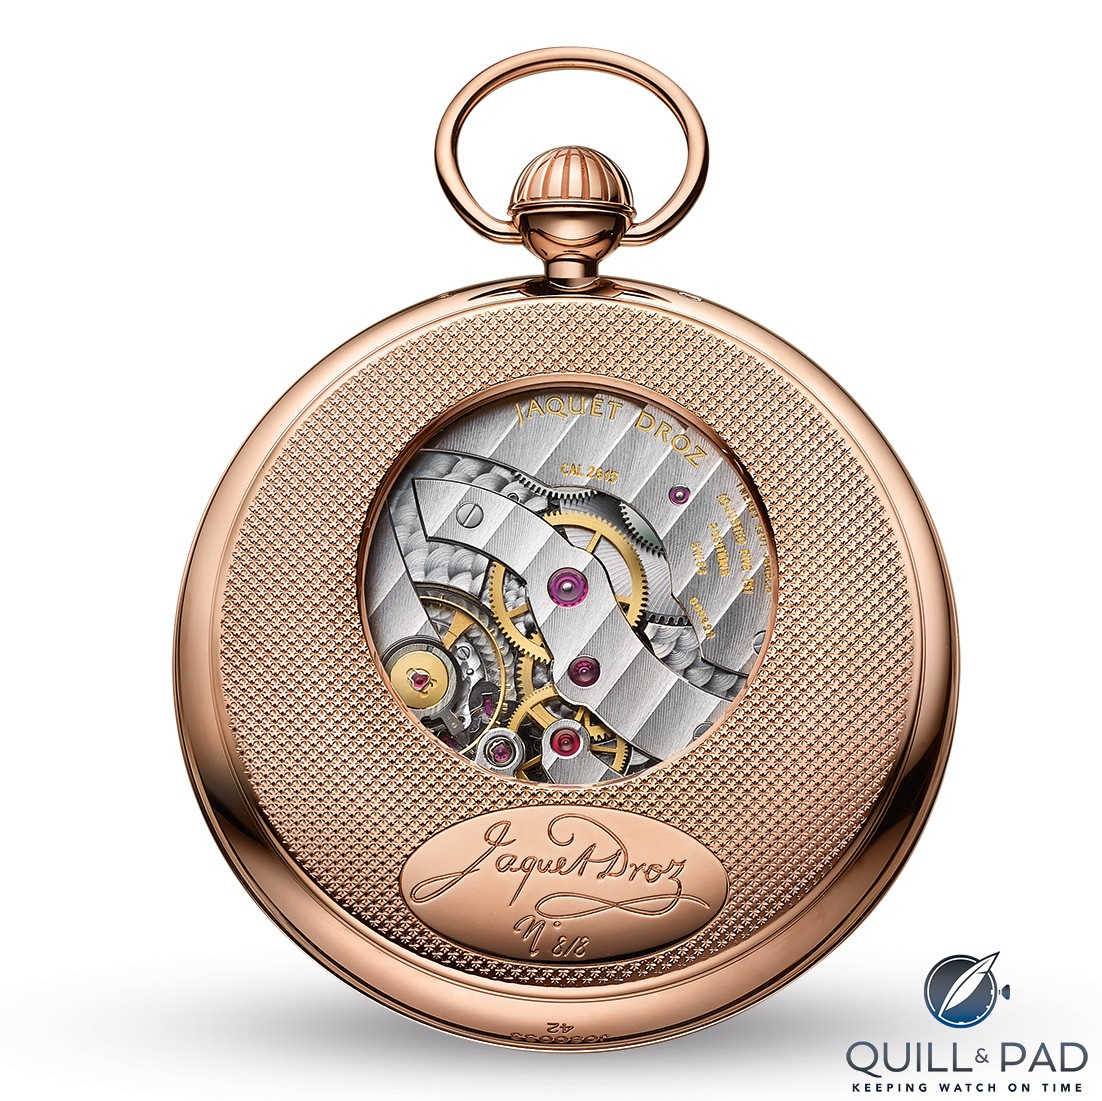 View from the back of the Jaquet Droz Pocket Watch Paillonnée